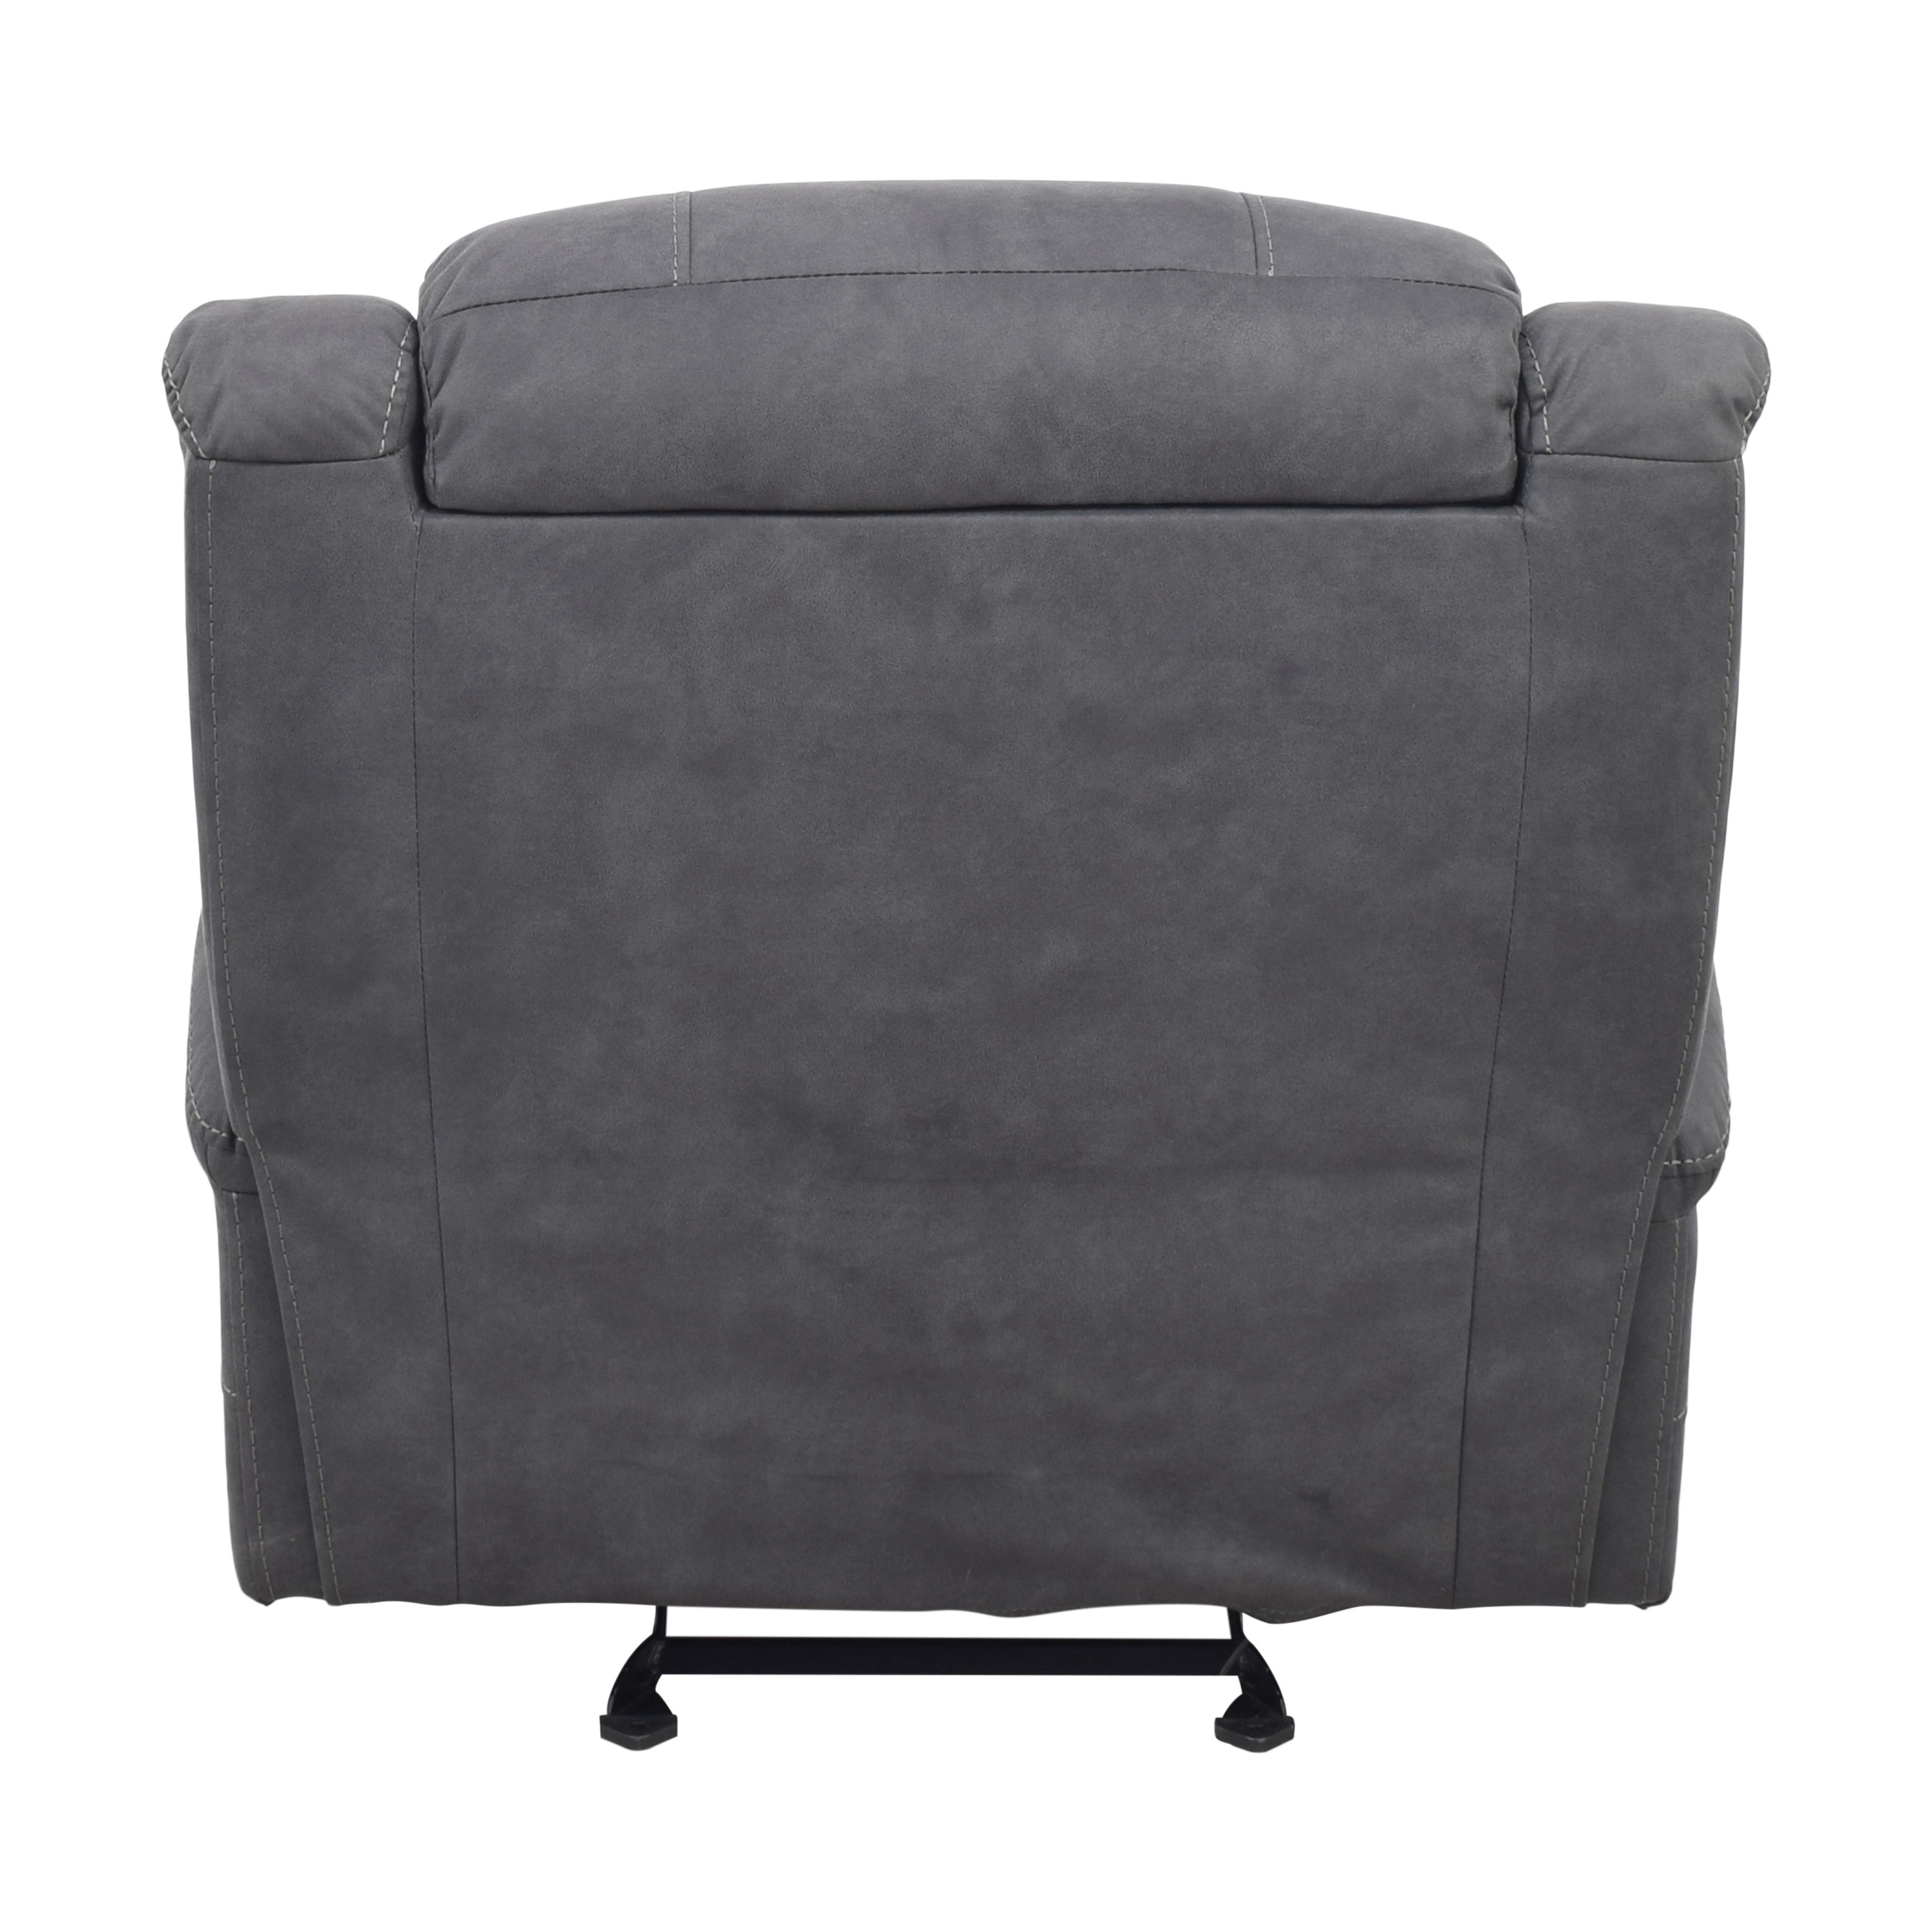 Raymour & Flanigan Quincey Glider Power Recliner Raymour & Flanigan